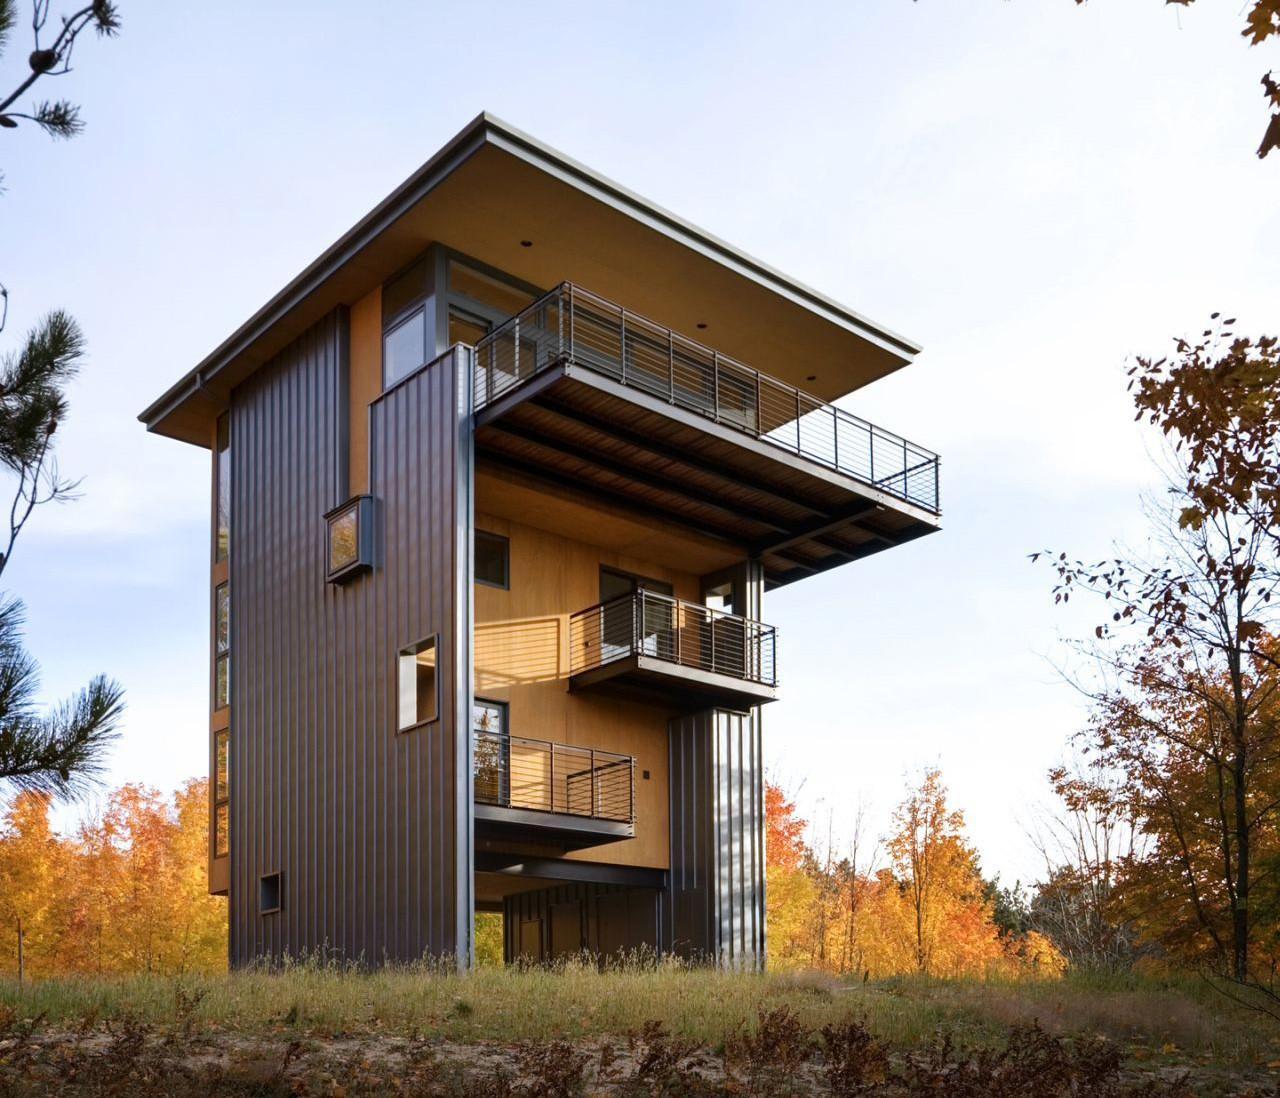 Storey Tall House Reaches Above Forest See Lake